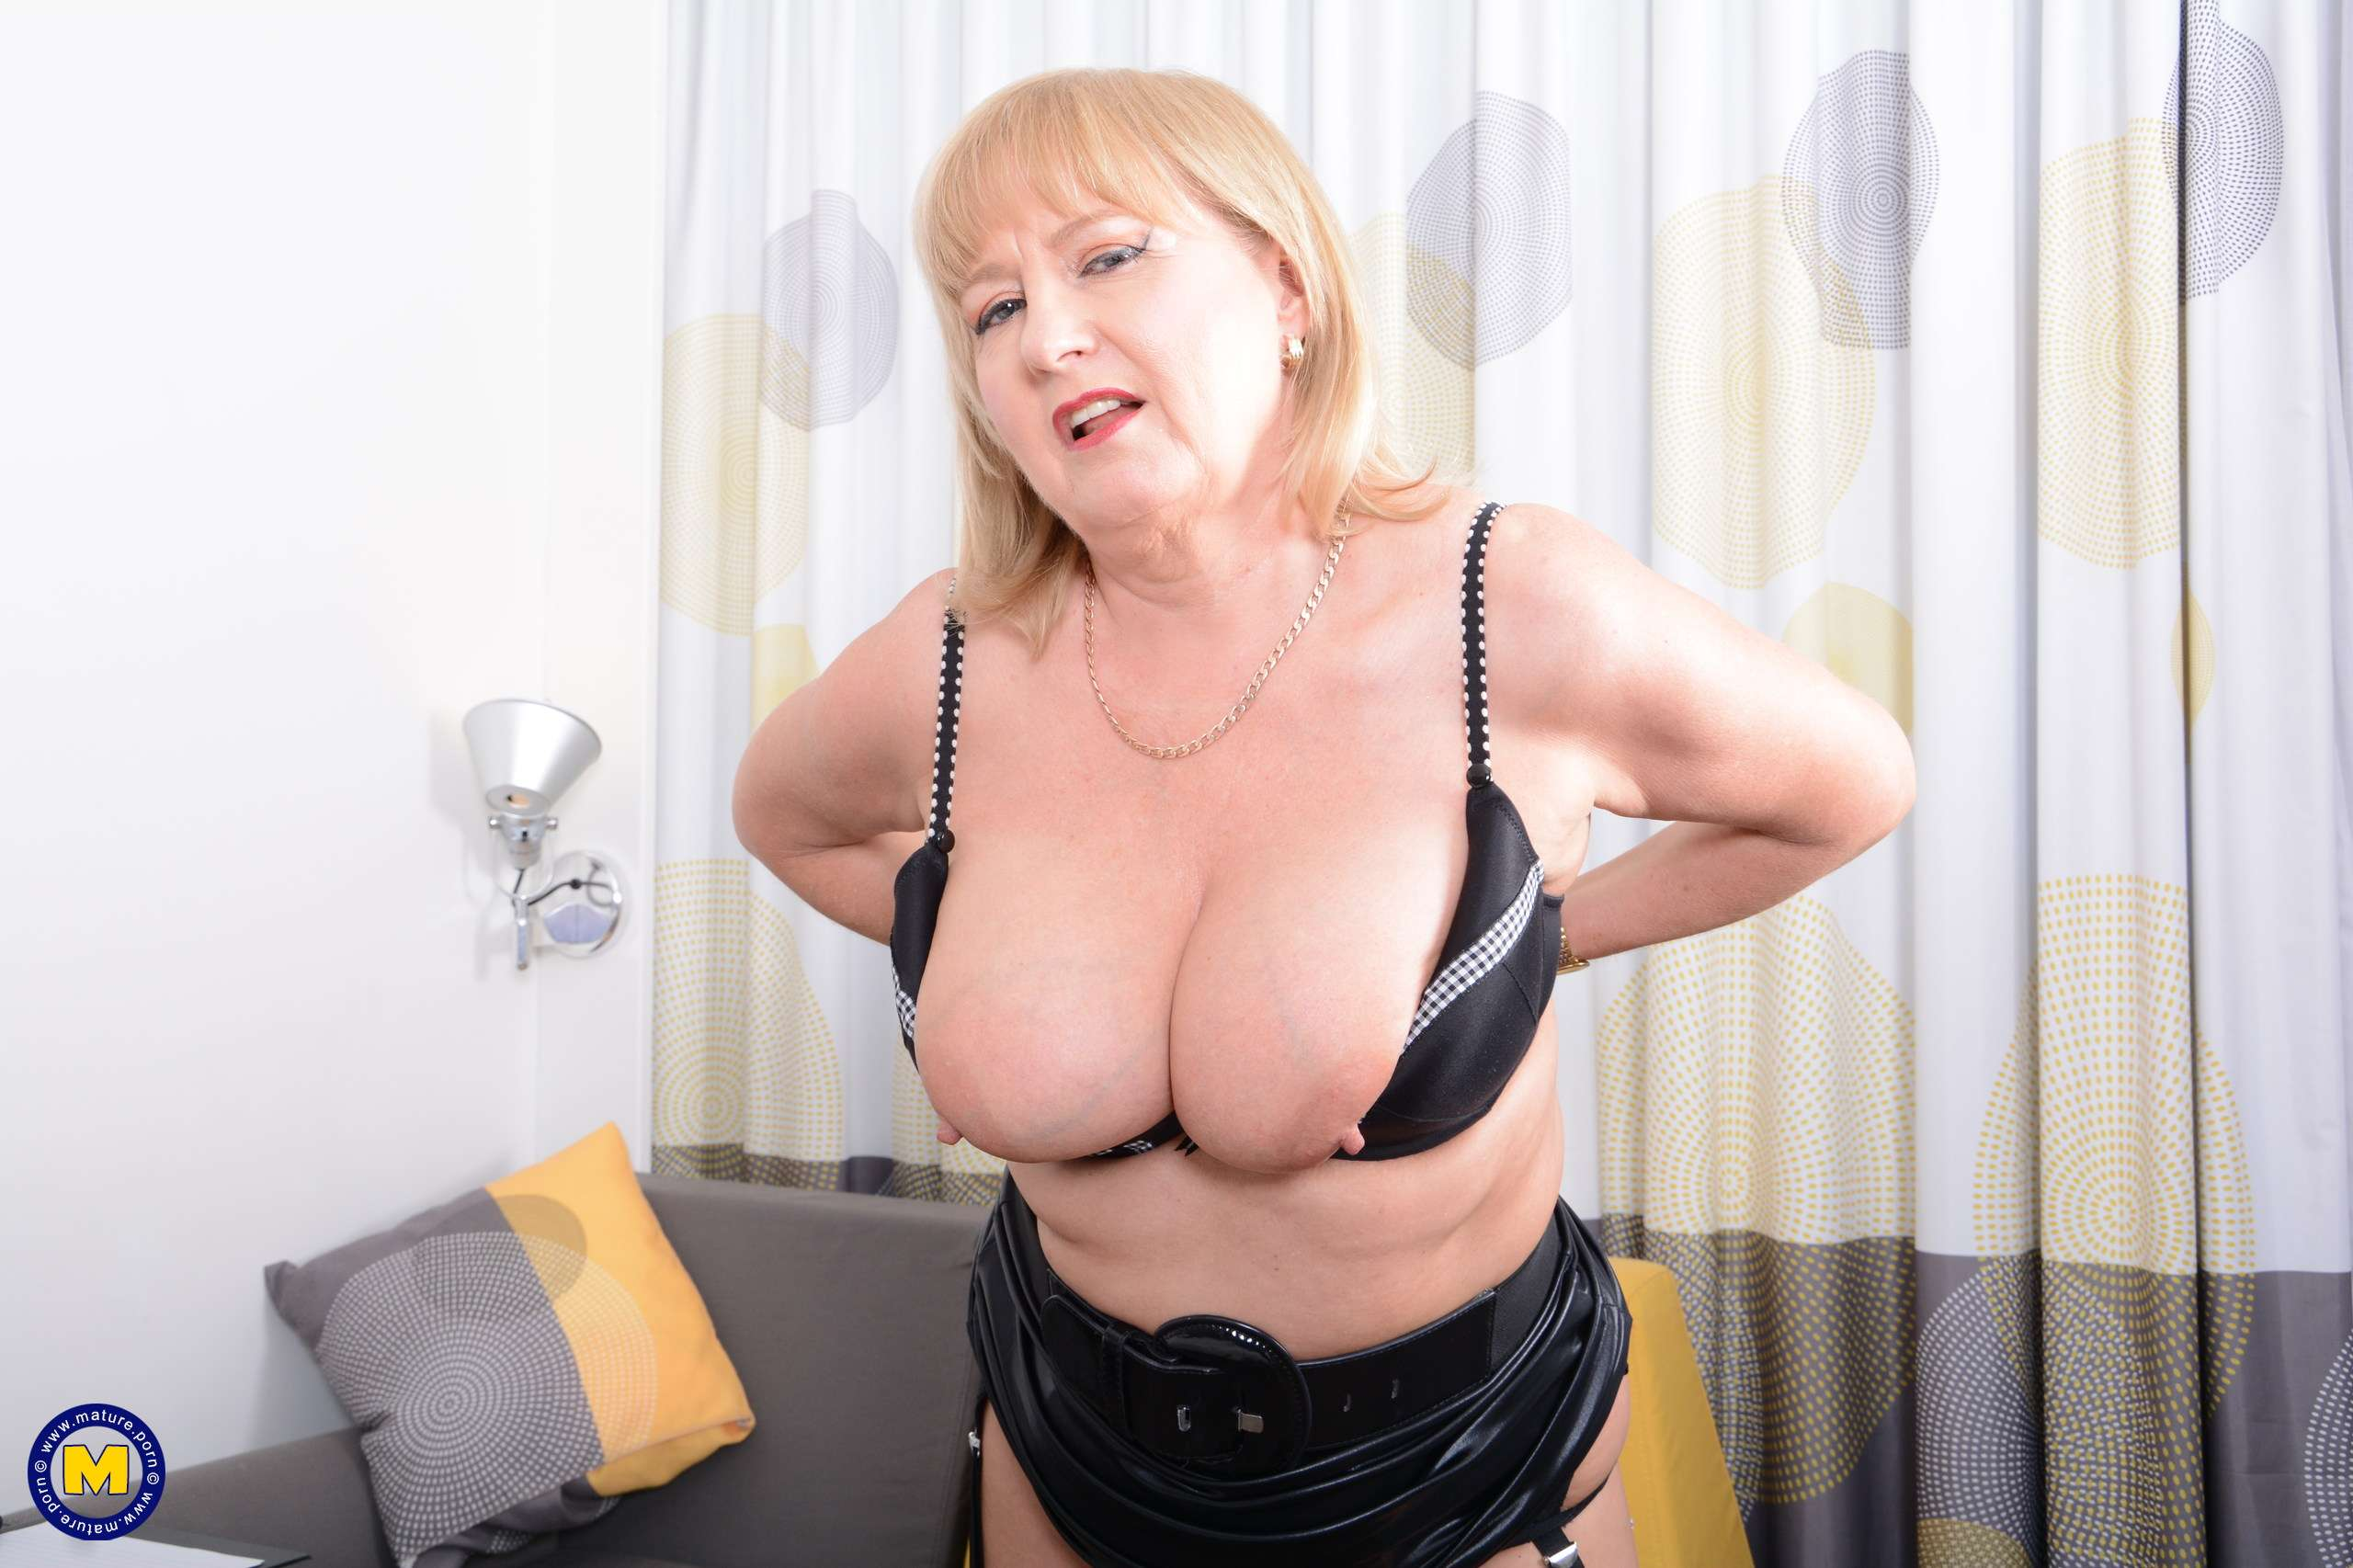 Naughty housewife Lorna Blu showing off her great rack